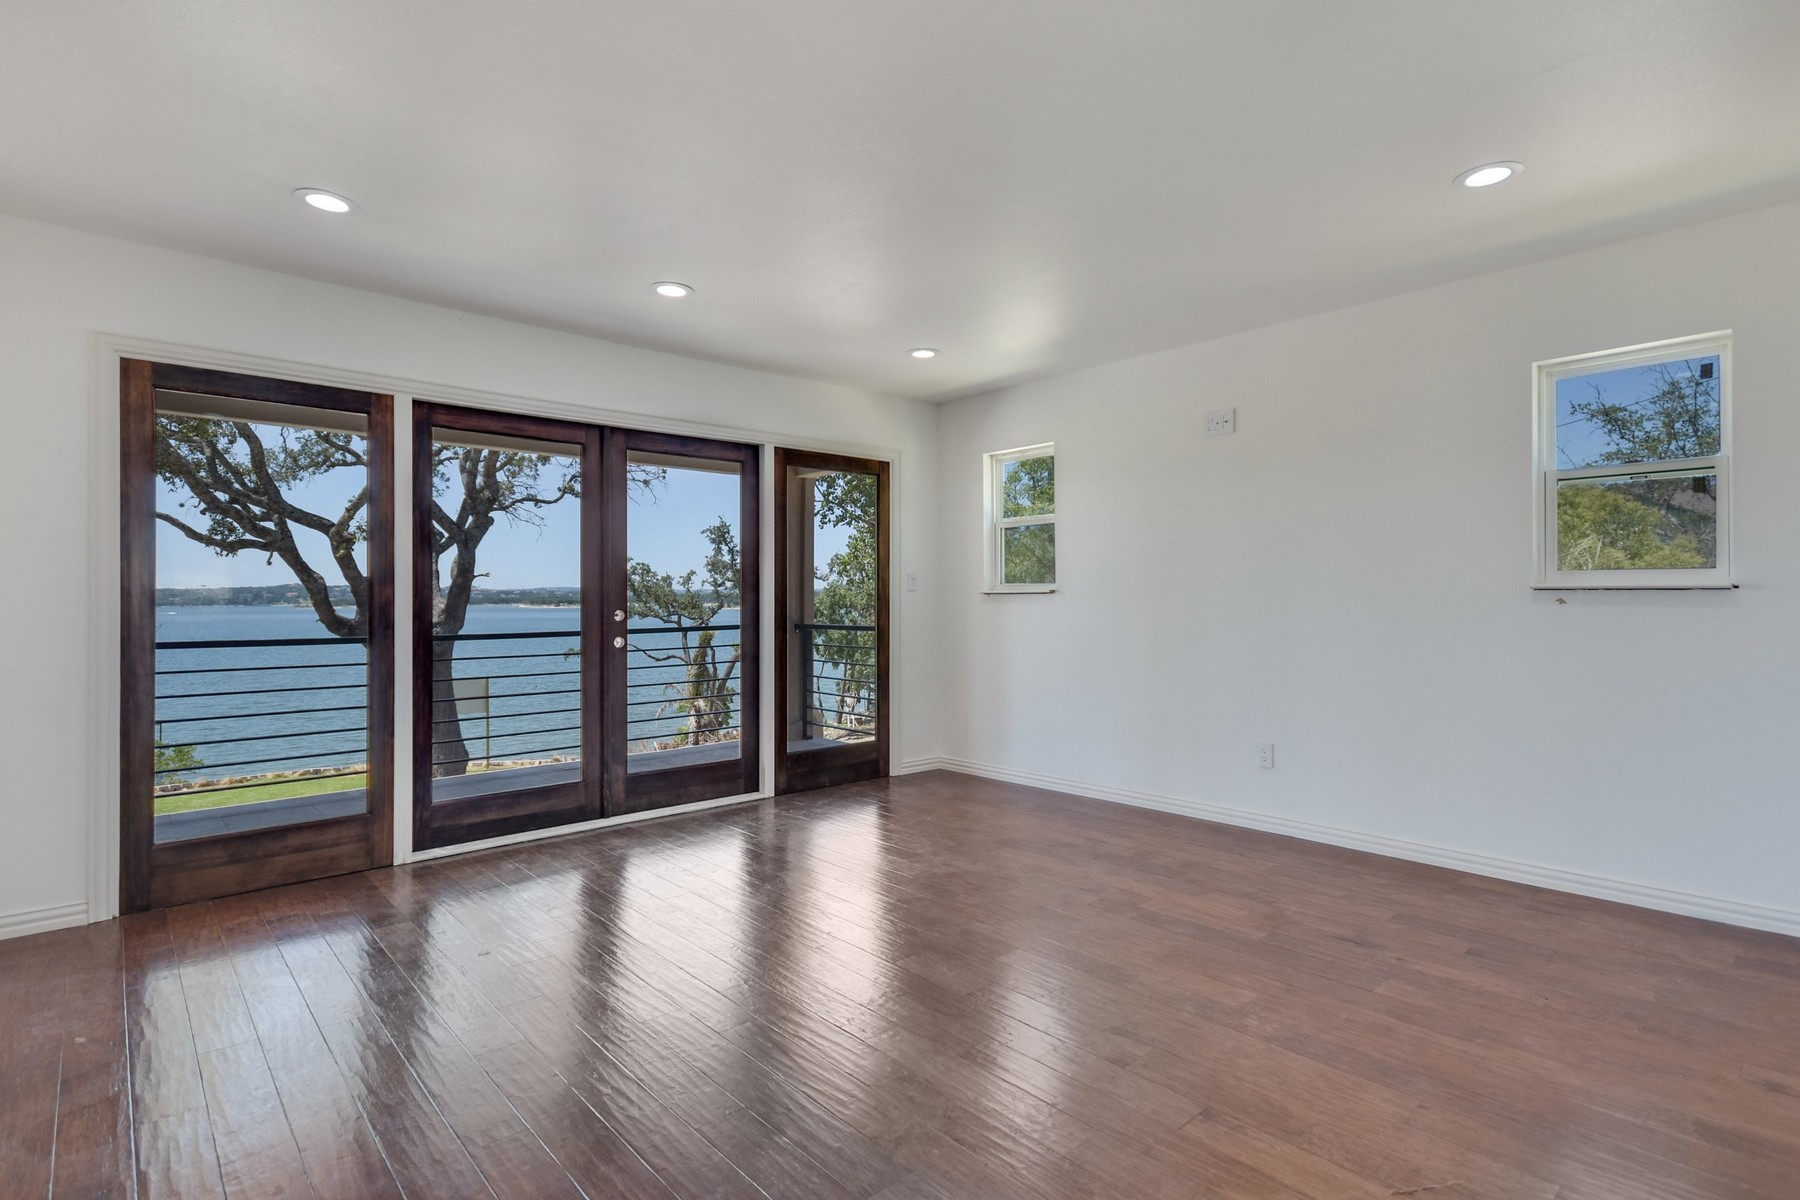 Additional photo for property listing at Stunning Home with a Fabulous Lake View 16907 S Ridge Ln Austin, Texas 78734 United States